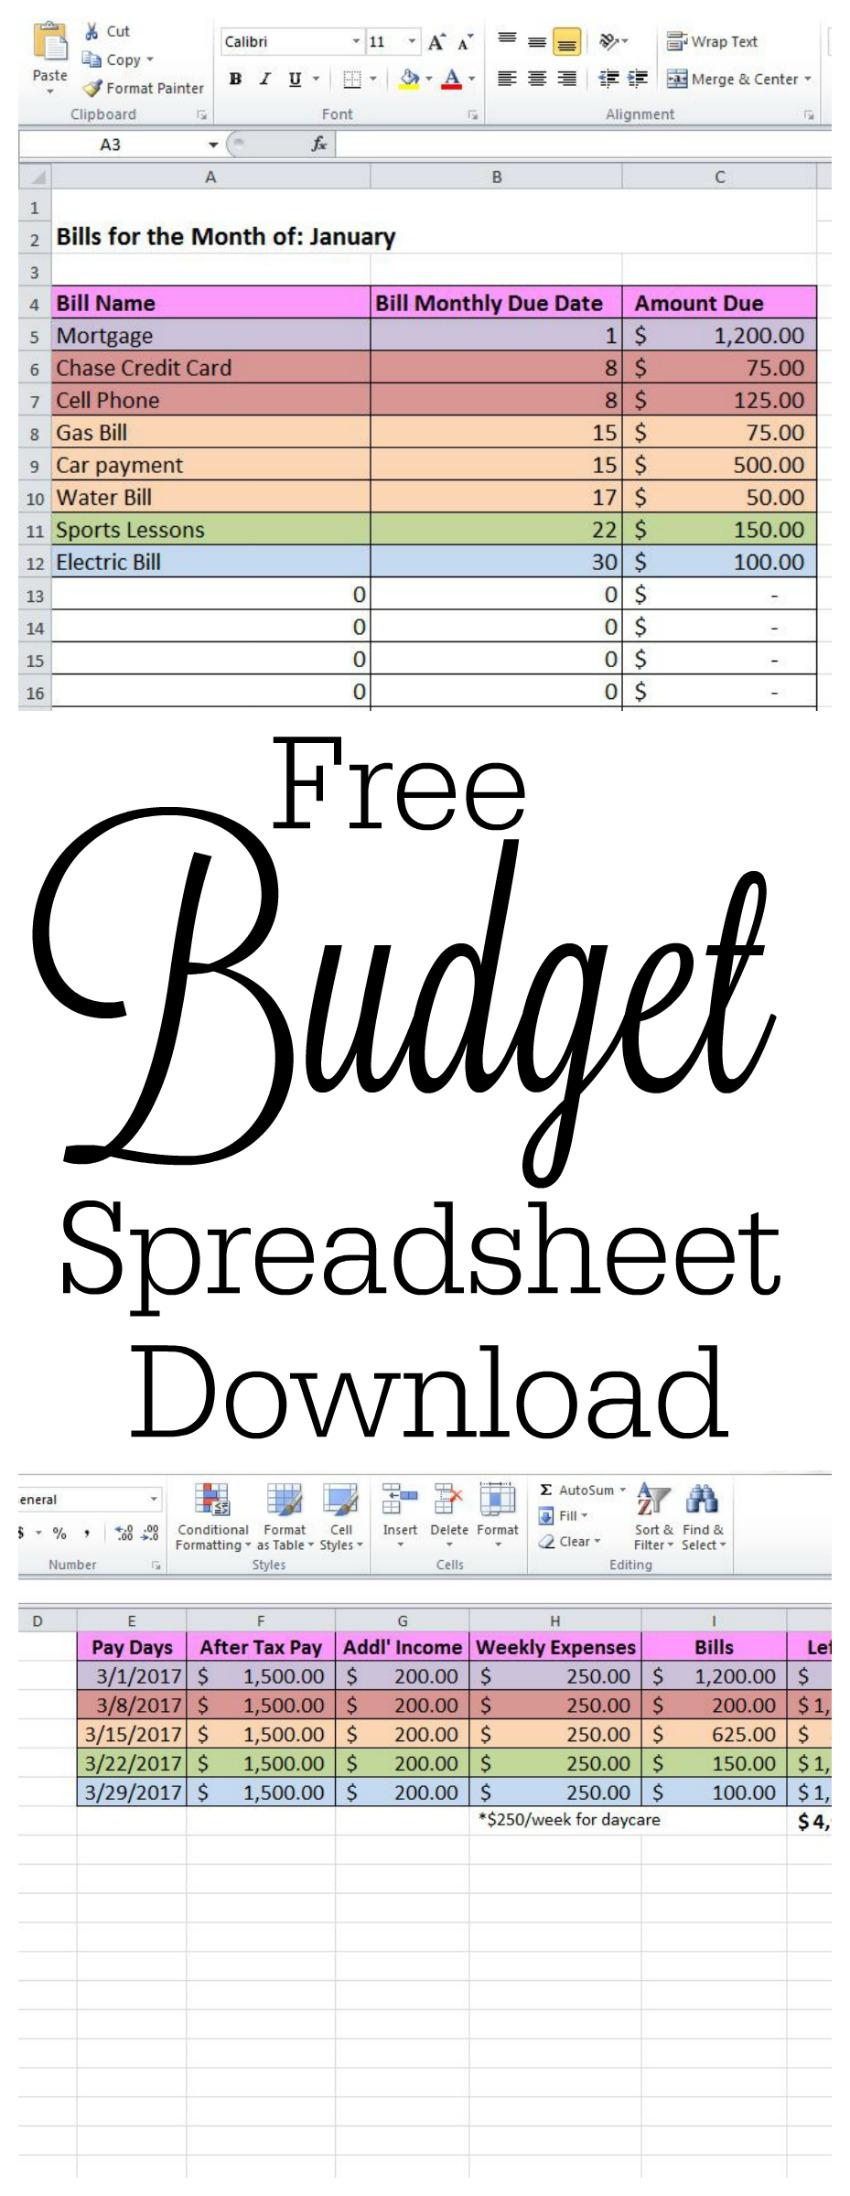 Budget Spreadsheet Download Within Free Budget Spreadsheet And How To Keep Track Of Passwords  The